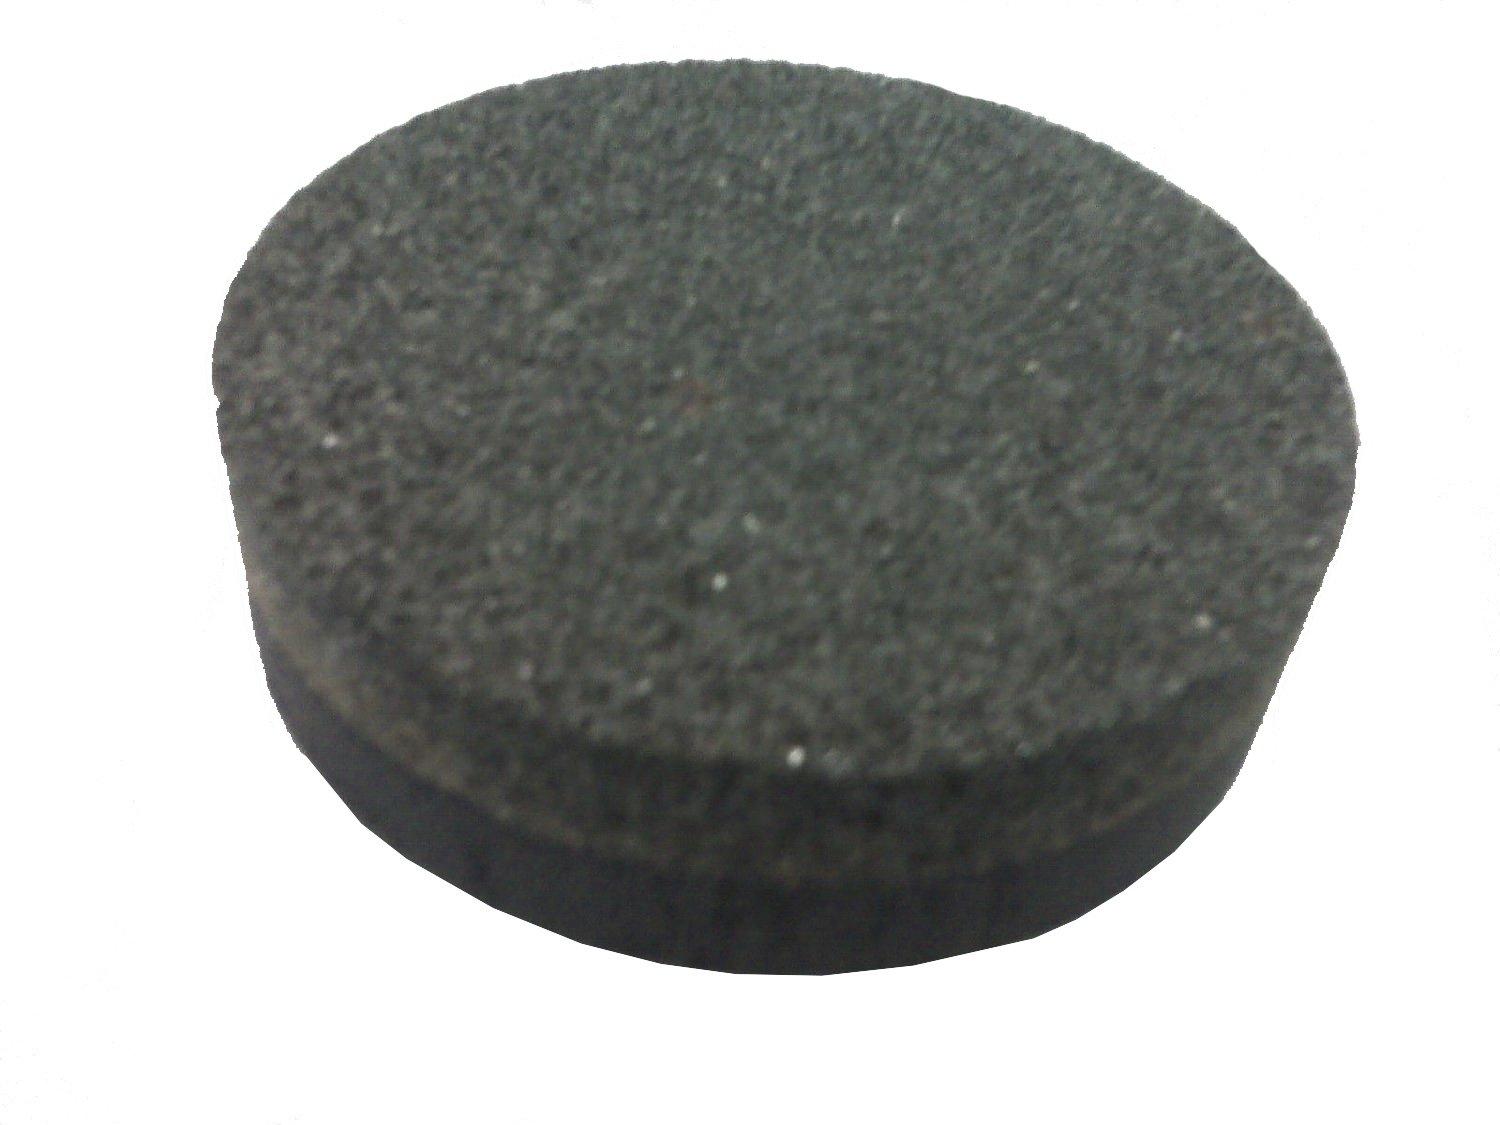 Tool Bays Combination Round Stone, Dual Grit: Two Stones in One. Coarse on One Side and Fine on the Other Side. 4'' Diameter X 1'' Round Stone